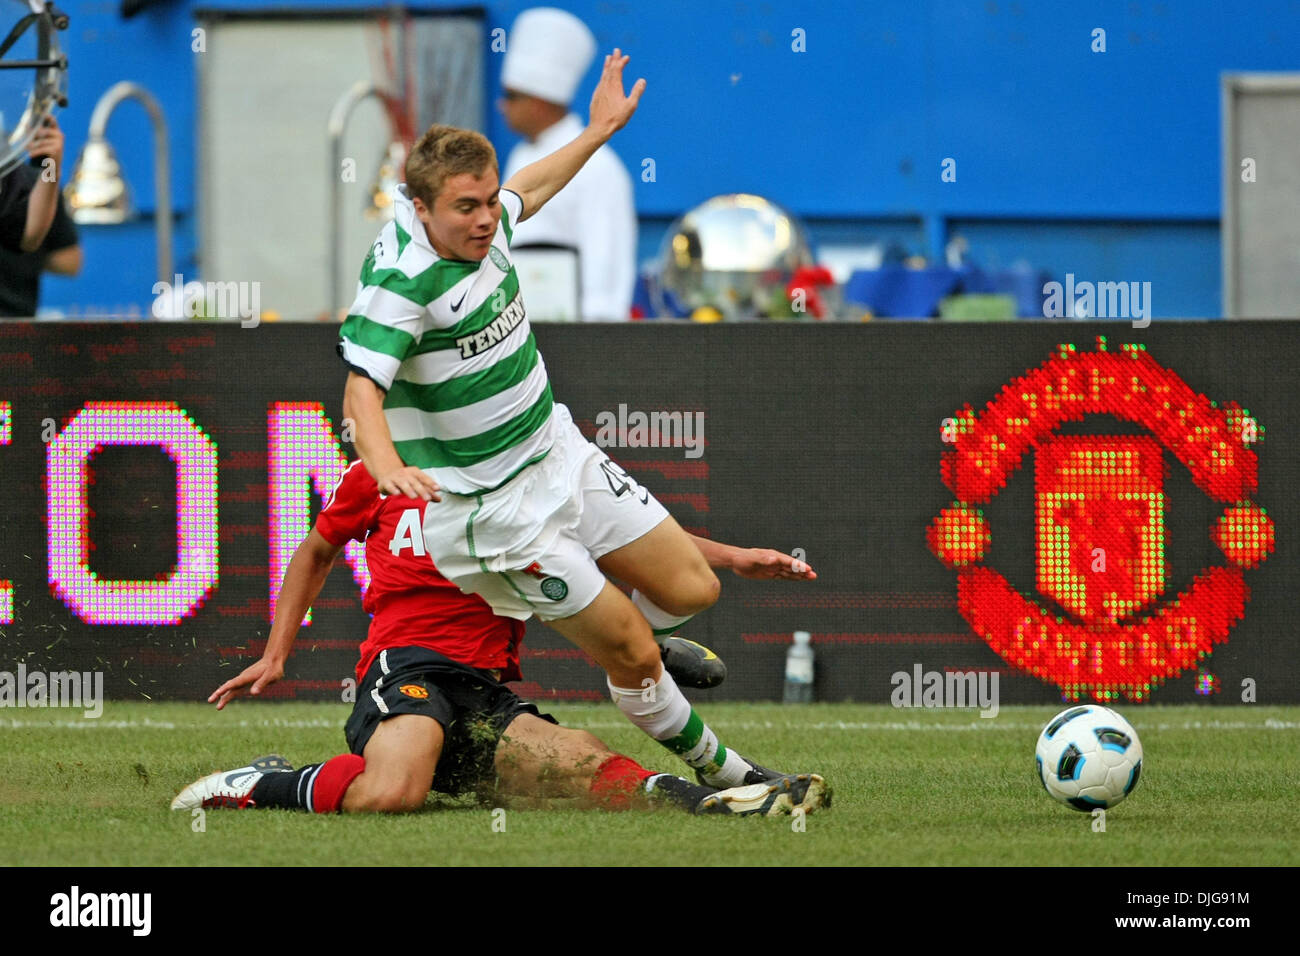 July 16, 2010 - Toronto, Ontario, Canada - 16 July 2010: Celtic FC James Forrest (49) is tripped up during a soccer game against  Manchester United at the Rogers Centre in Toronto, Ontario..Mandatory Credit: Anson Hung / Southcreek Global. (Credit Image: © Southcreek Global/ZUMApress.com) - Stock Image